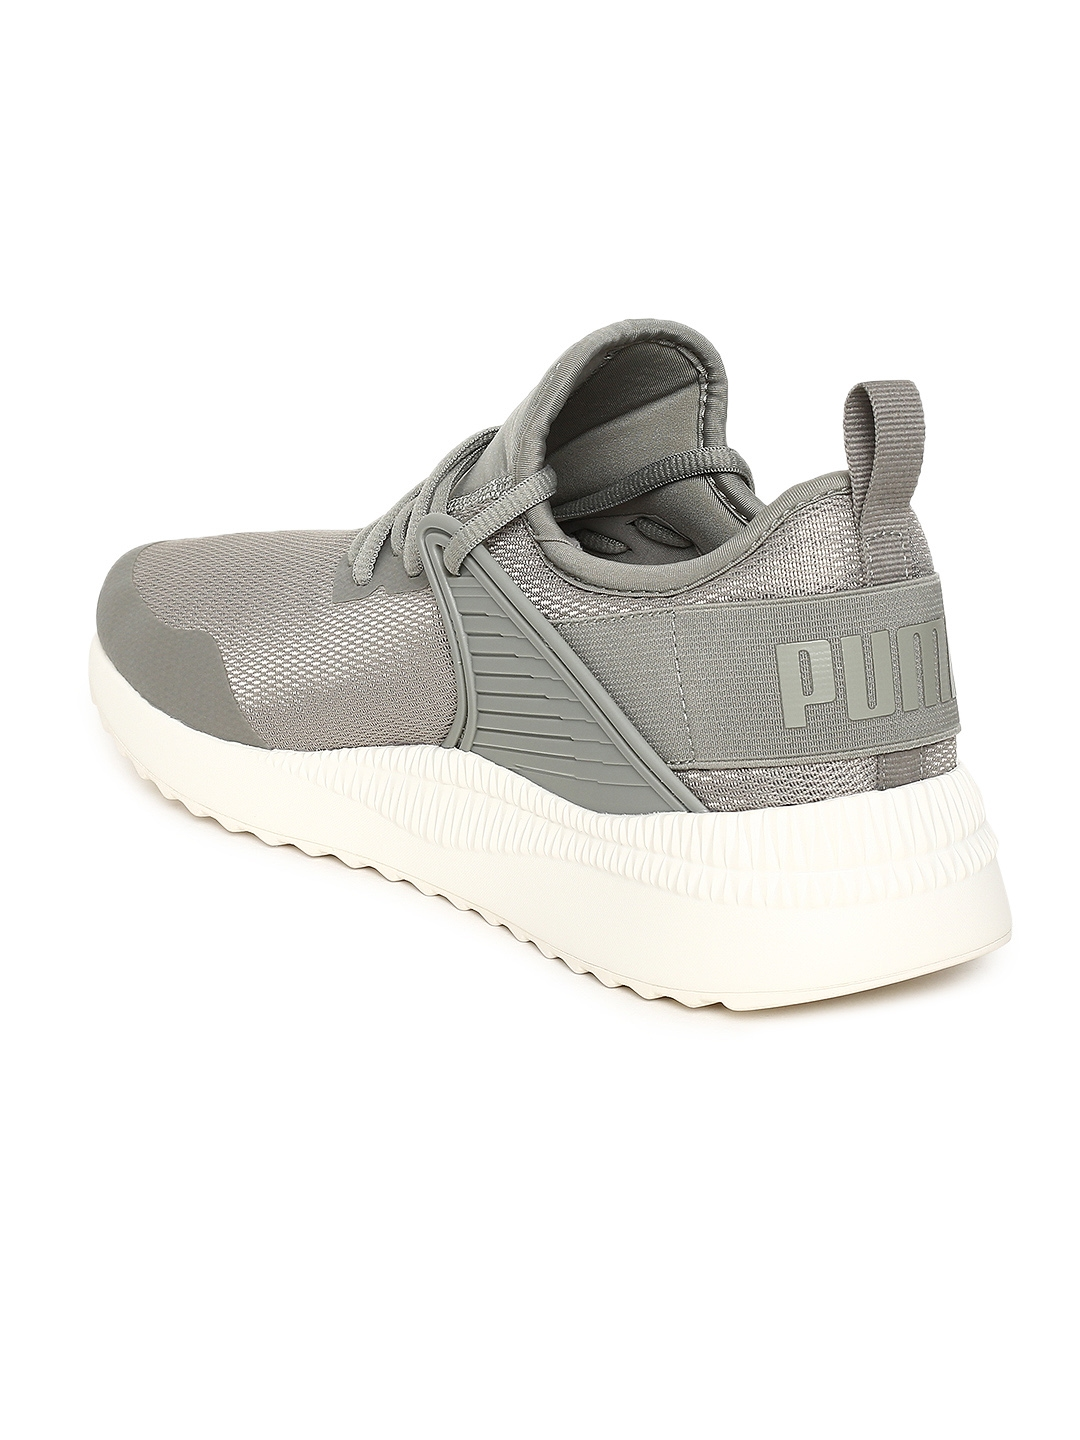 Buy Puma Men Grey Pacer Next Cage Sneakers - Casual Shoes for Men ... 30035b3b6